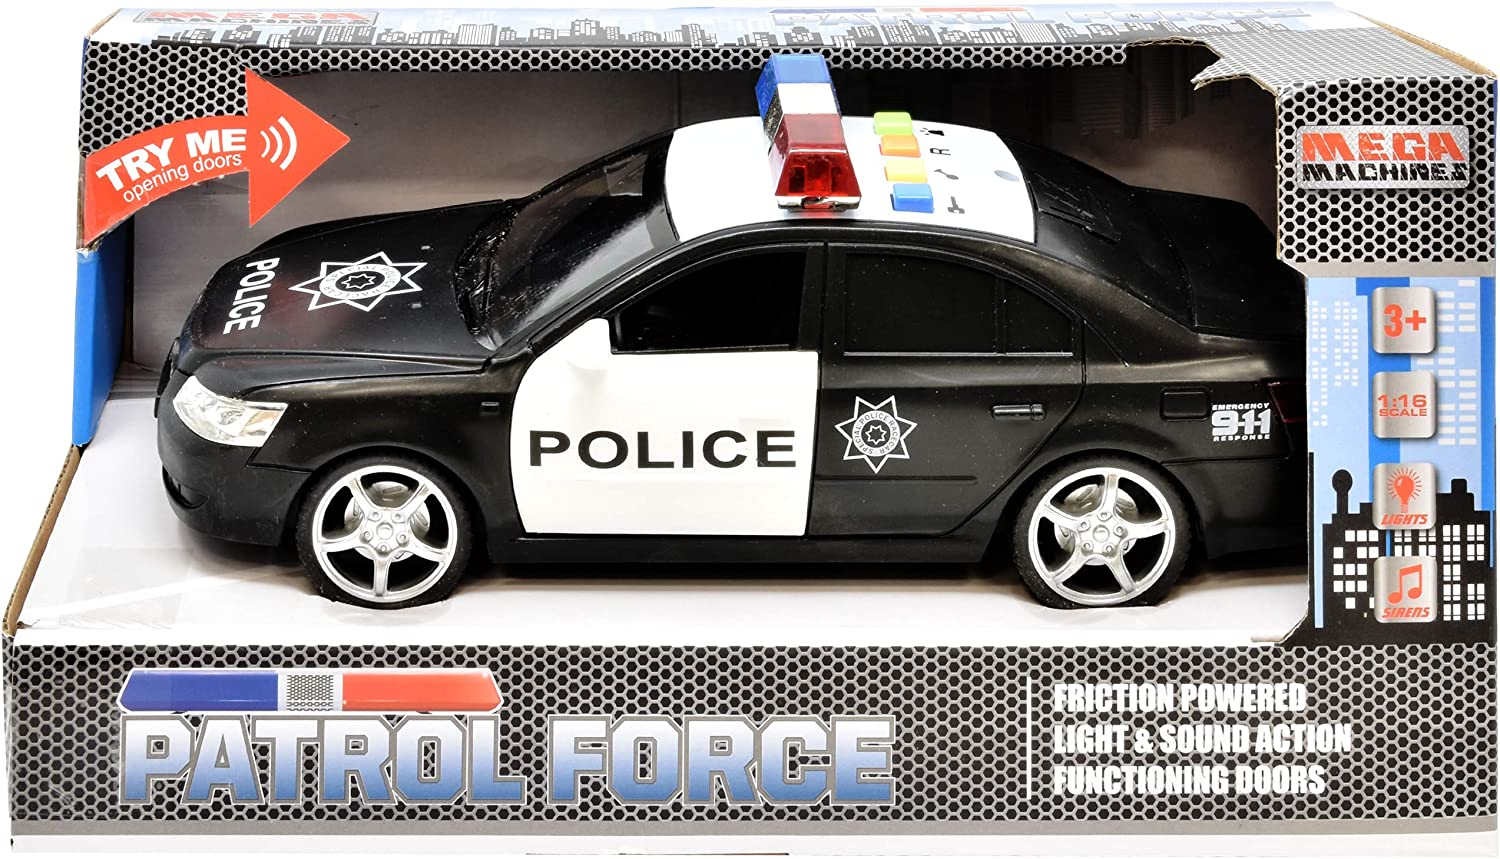 Number 1 in Gadgets Police Car Toy Friction Powered Rescue Vehicle with Lights and Siren Sounds for Boys Toddlers and Kids Push and Go Pull Back Diecast Emergency Transport Vehicle Car